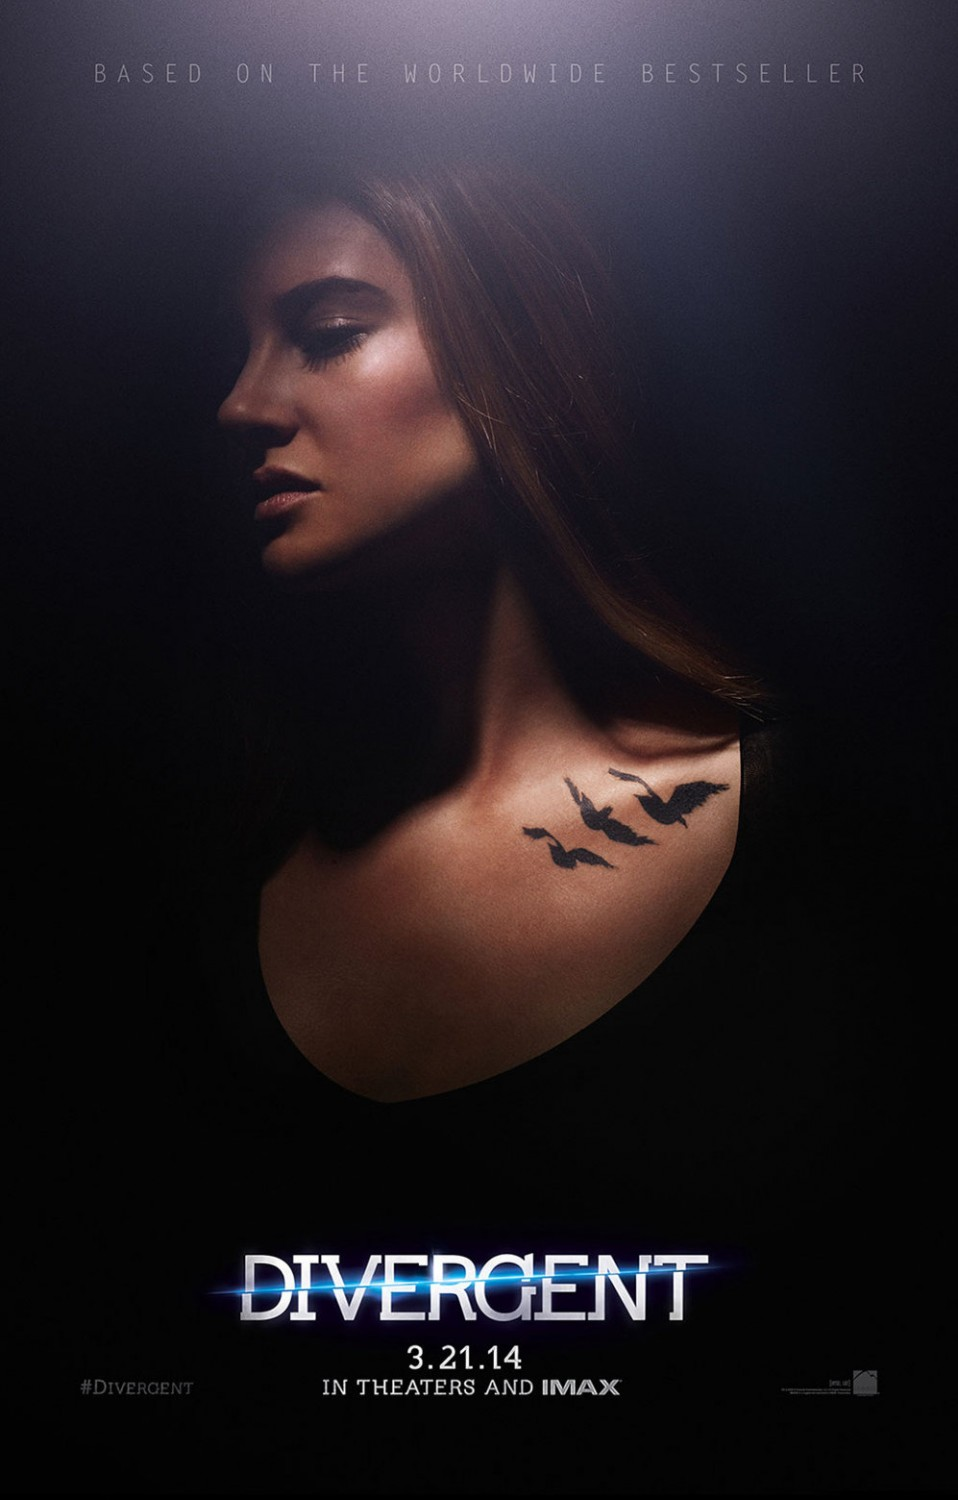 Divergent-Official Poster Banner PROMO CHAR XLG-11NOVEMBRO2013-01